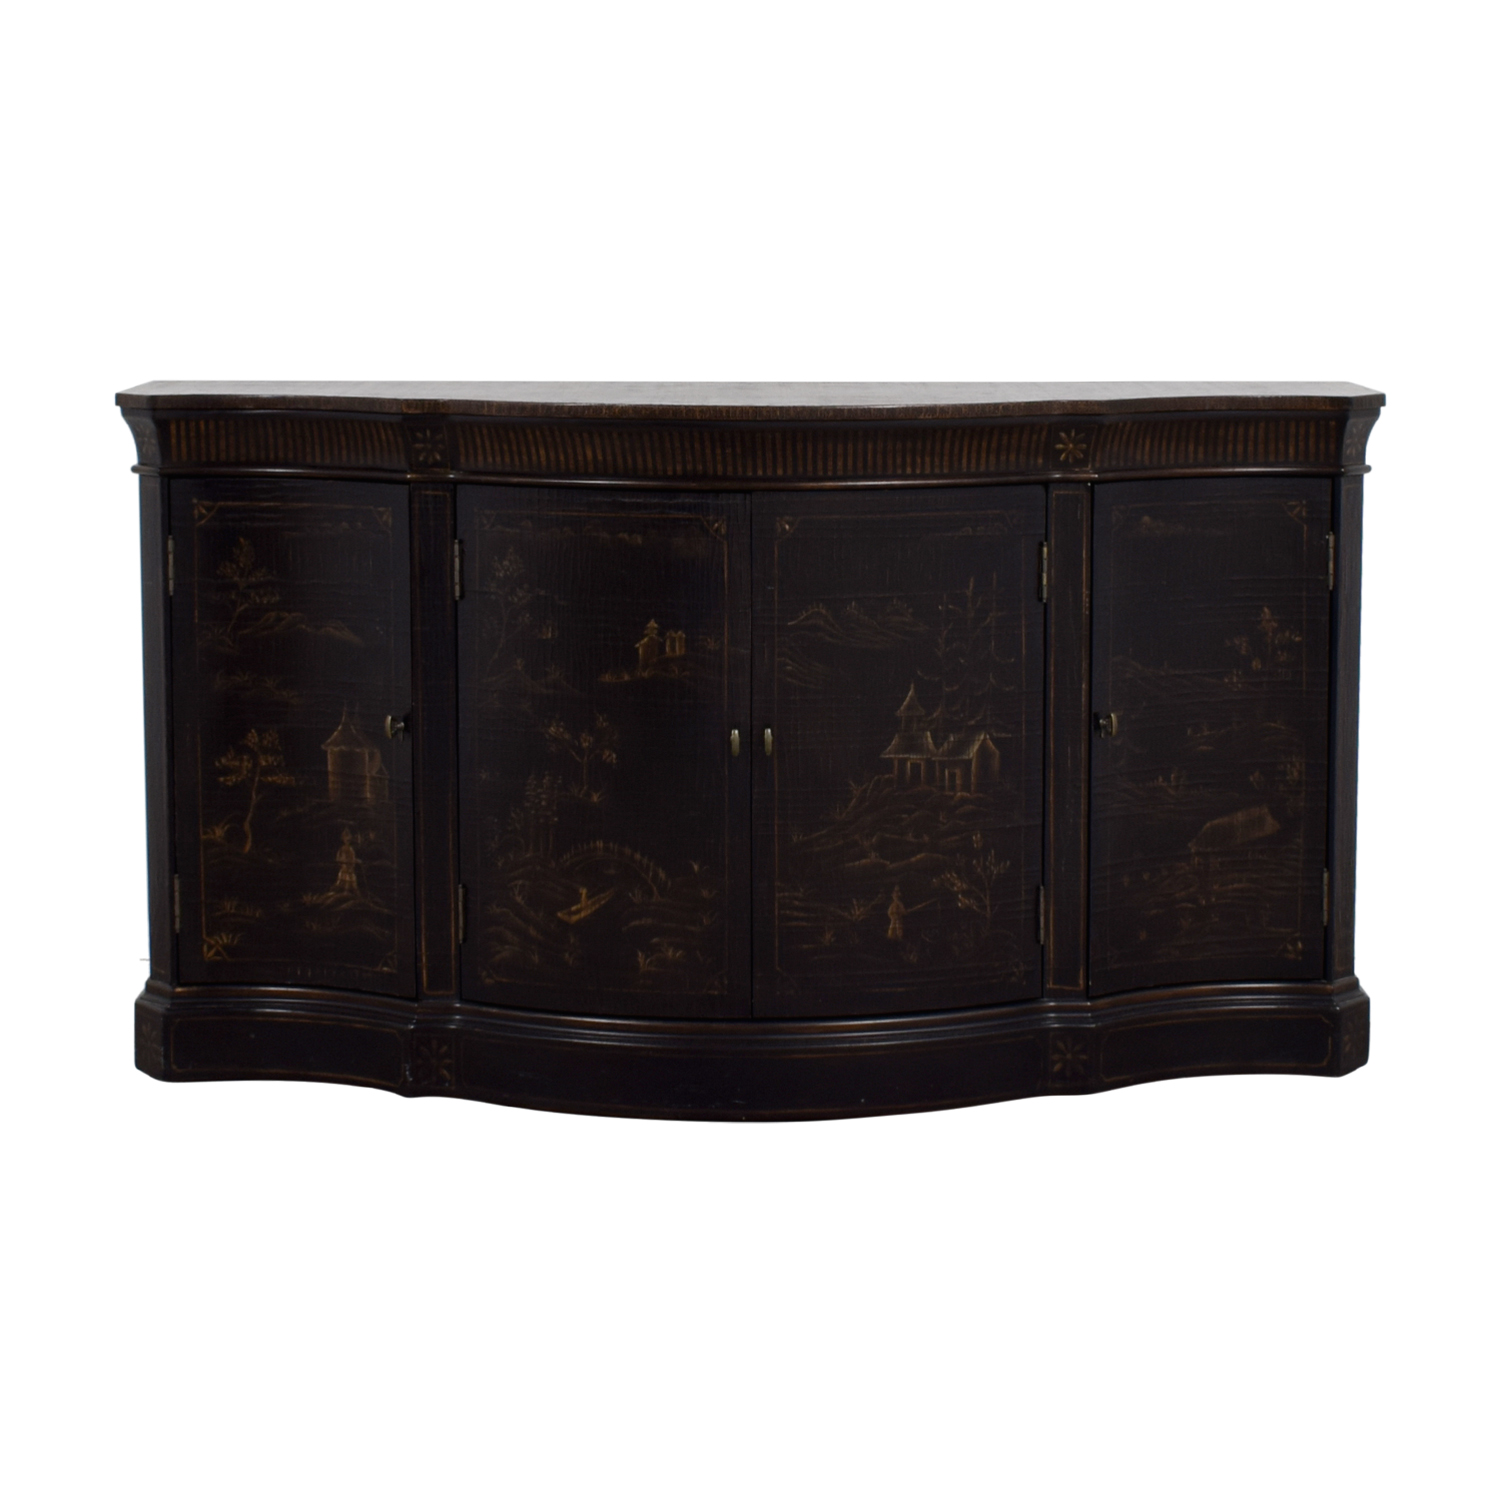 Ethan Allen Ethan Allen Asian Etched Sidebar Buffet price